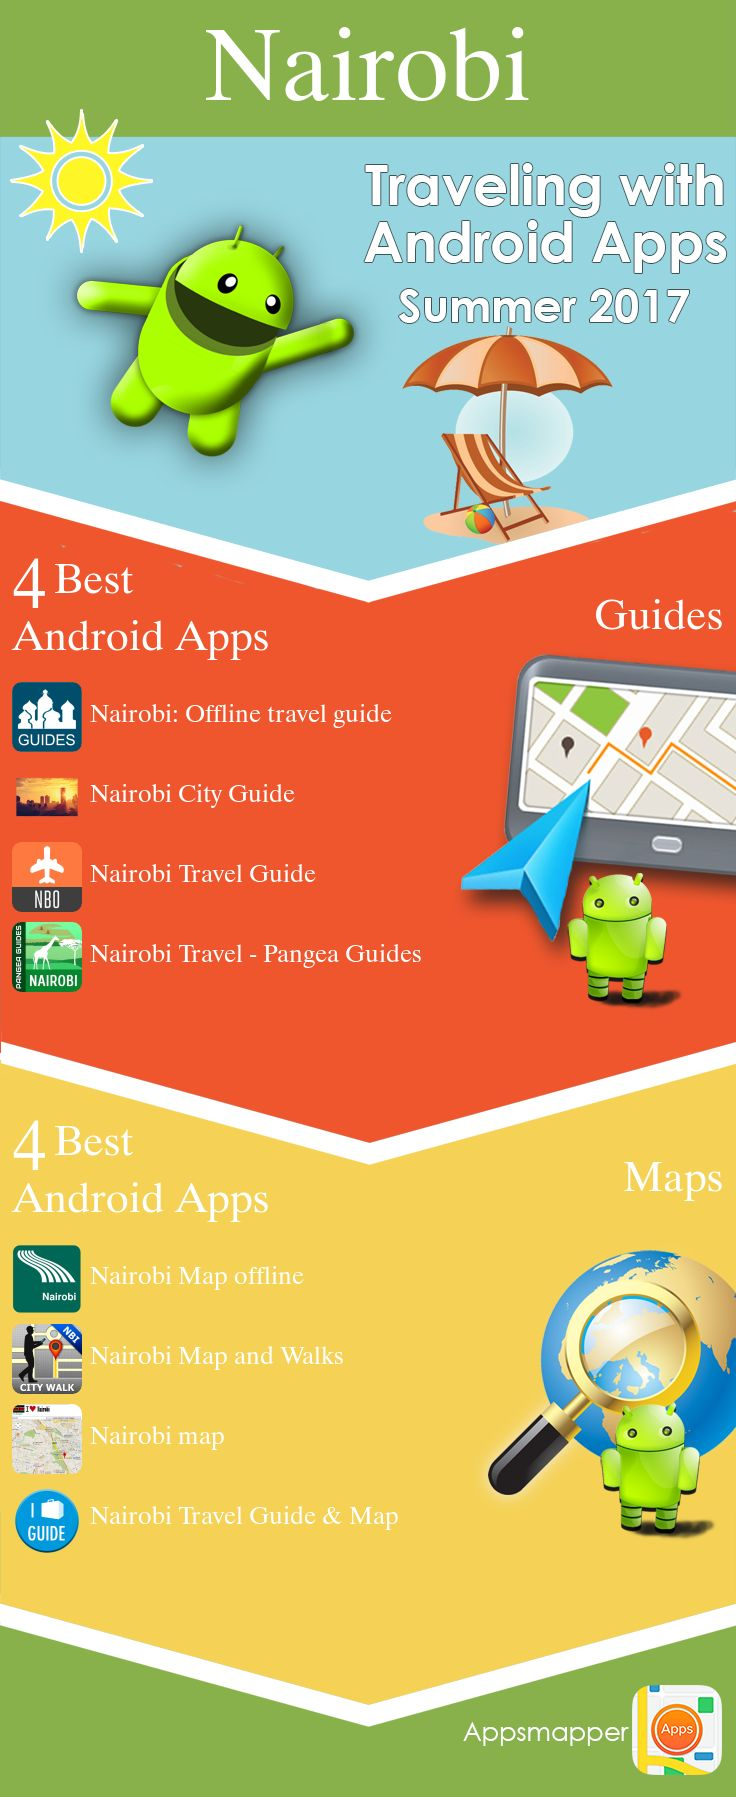 Nairobi Android apps: Travel Guides, Maps, Transportation, Biking, Museums, Parking, Sport and apps for Students.